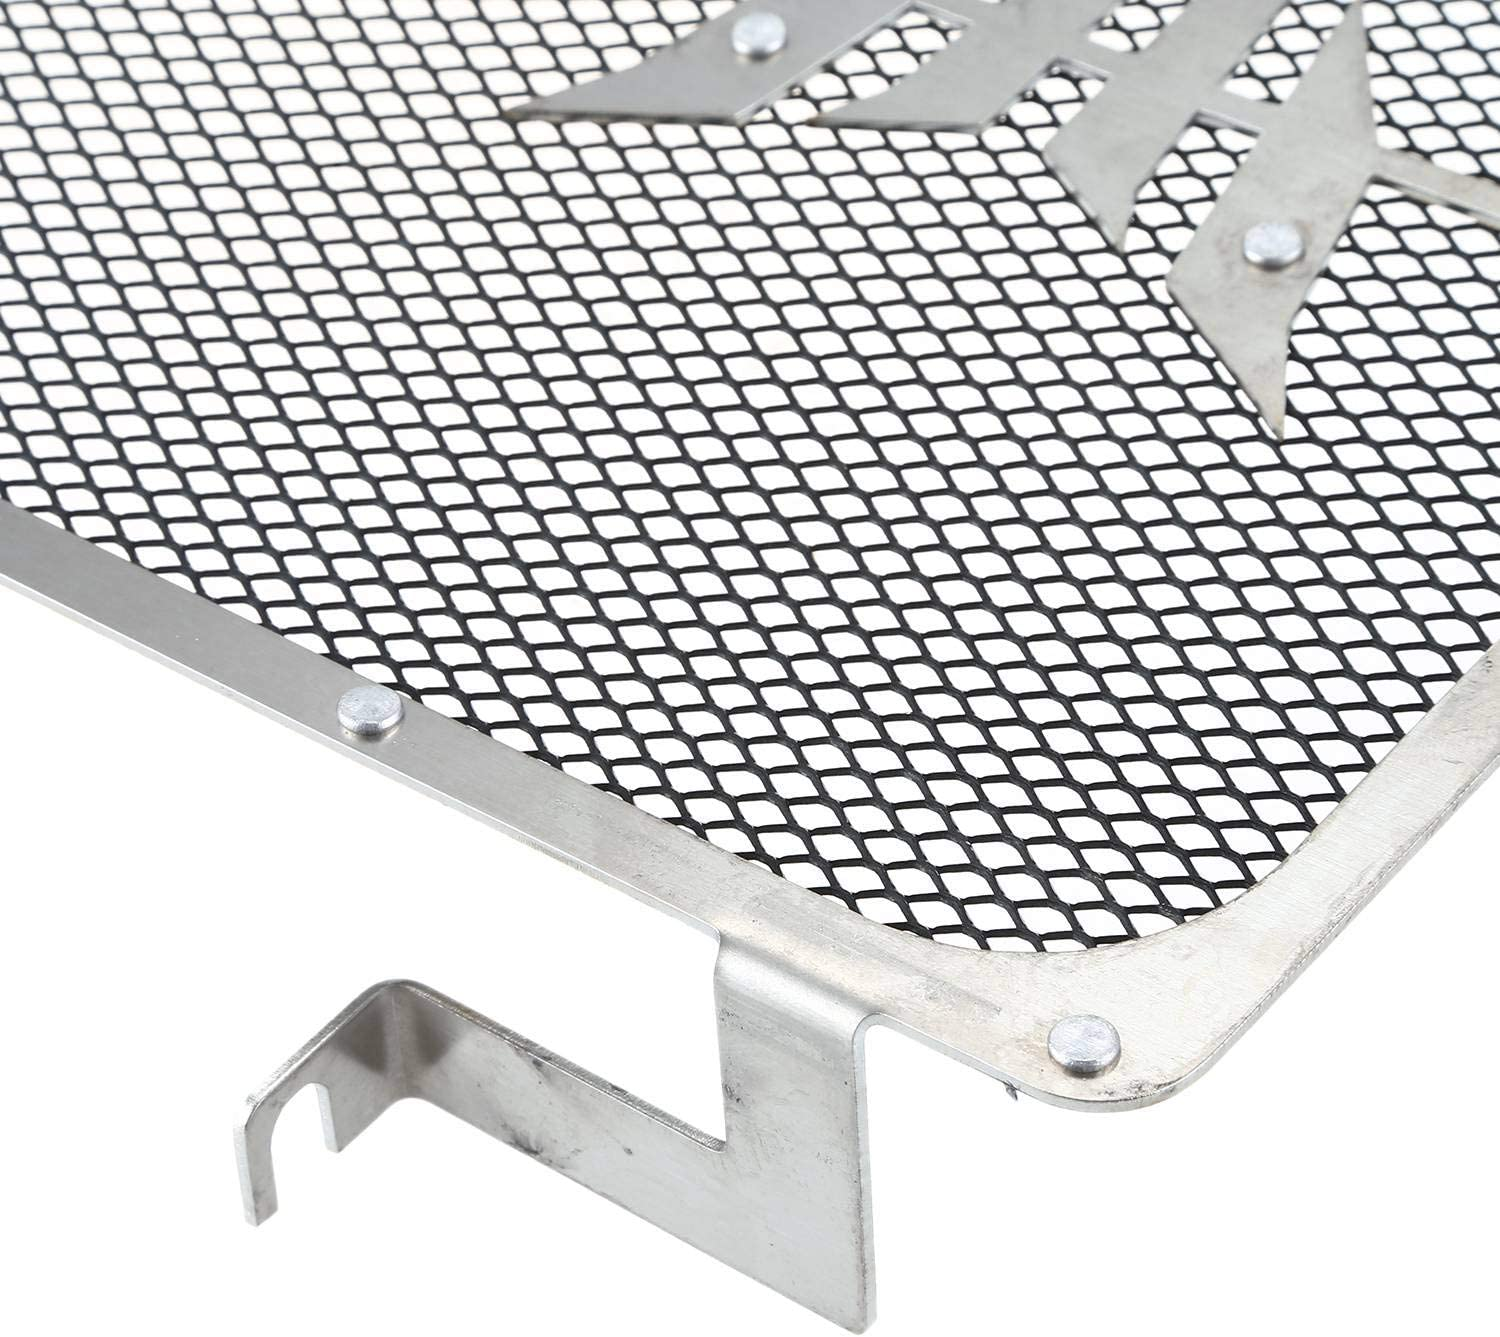 Iycorish Motorcycle Engine Radiator Protective Cover Grill Guard Grille Protector for MT-09 MT09 FZ-09 MT-09 Tracer 2014 2015-2017 Silver